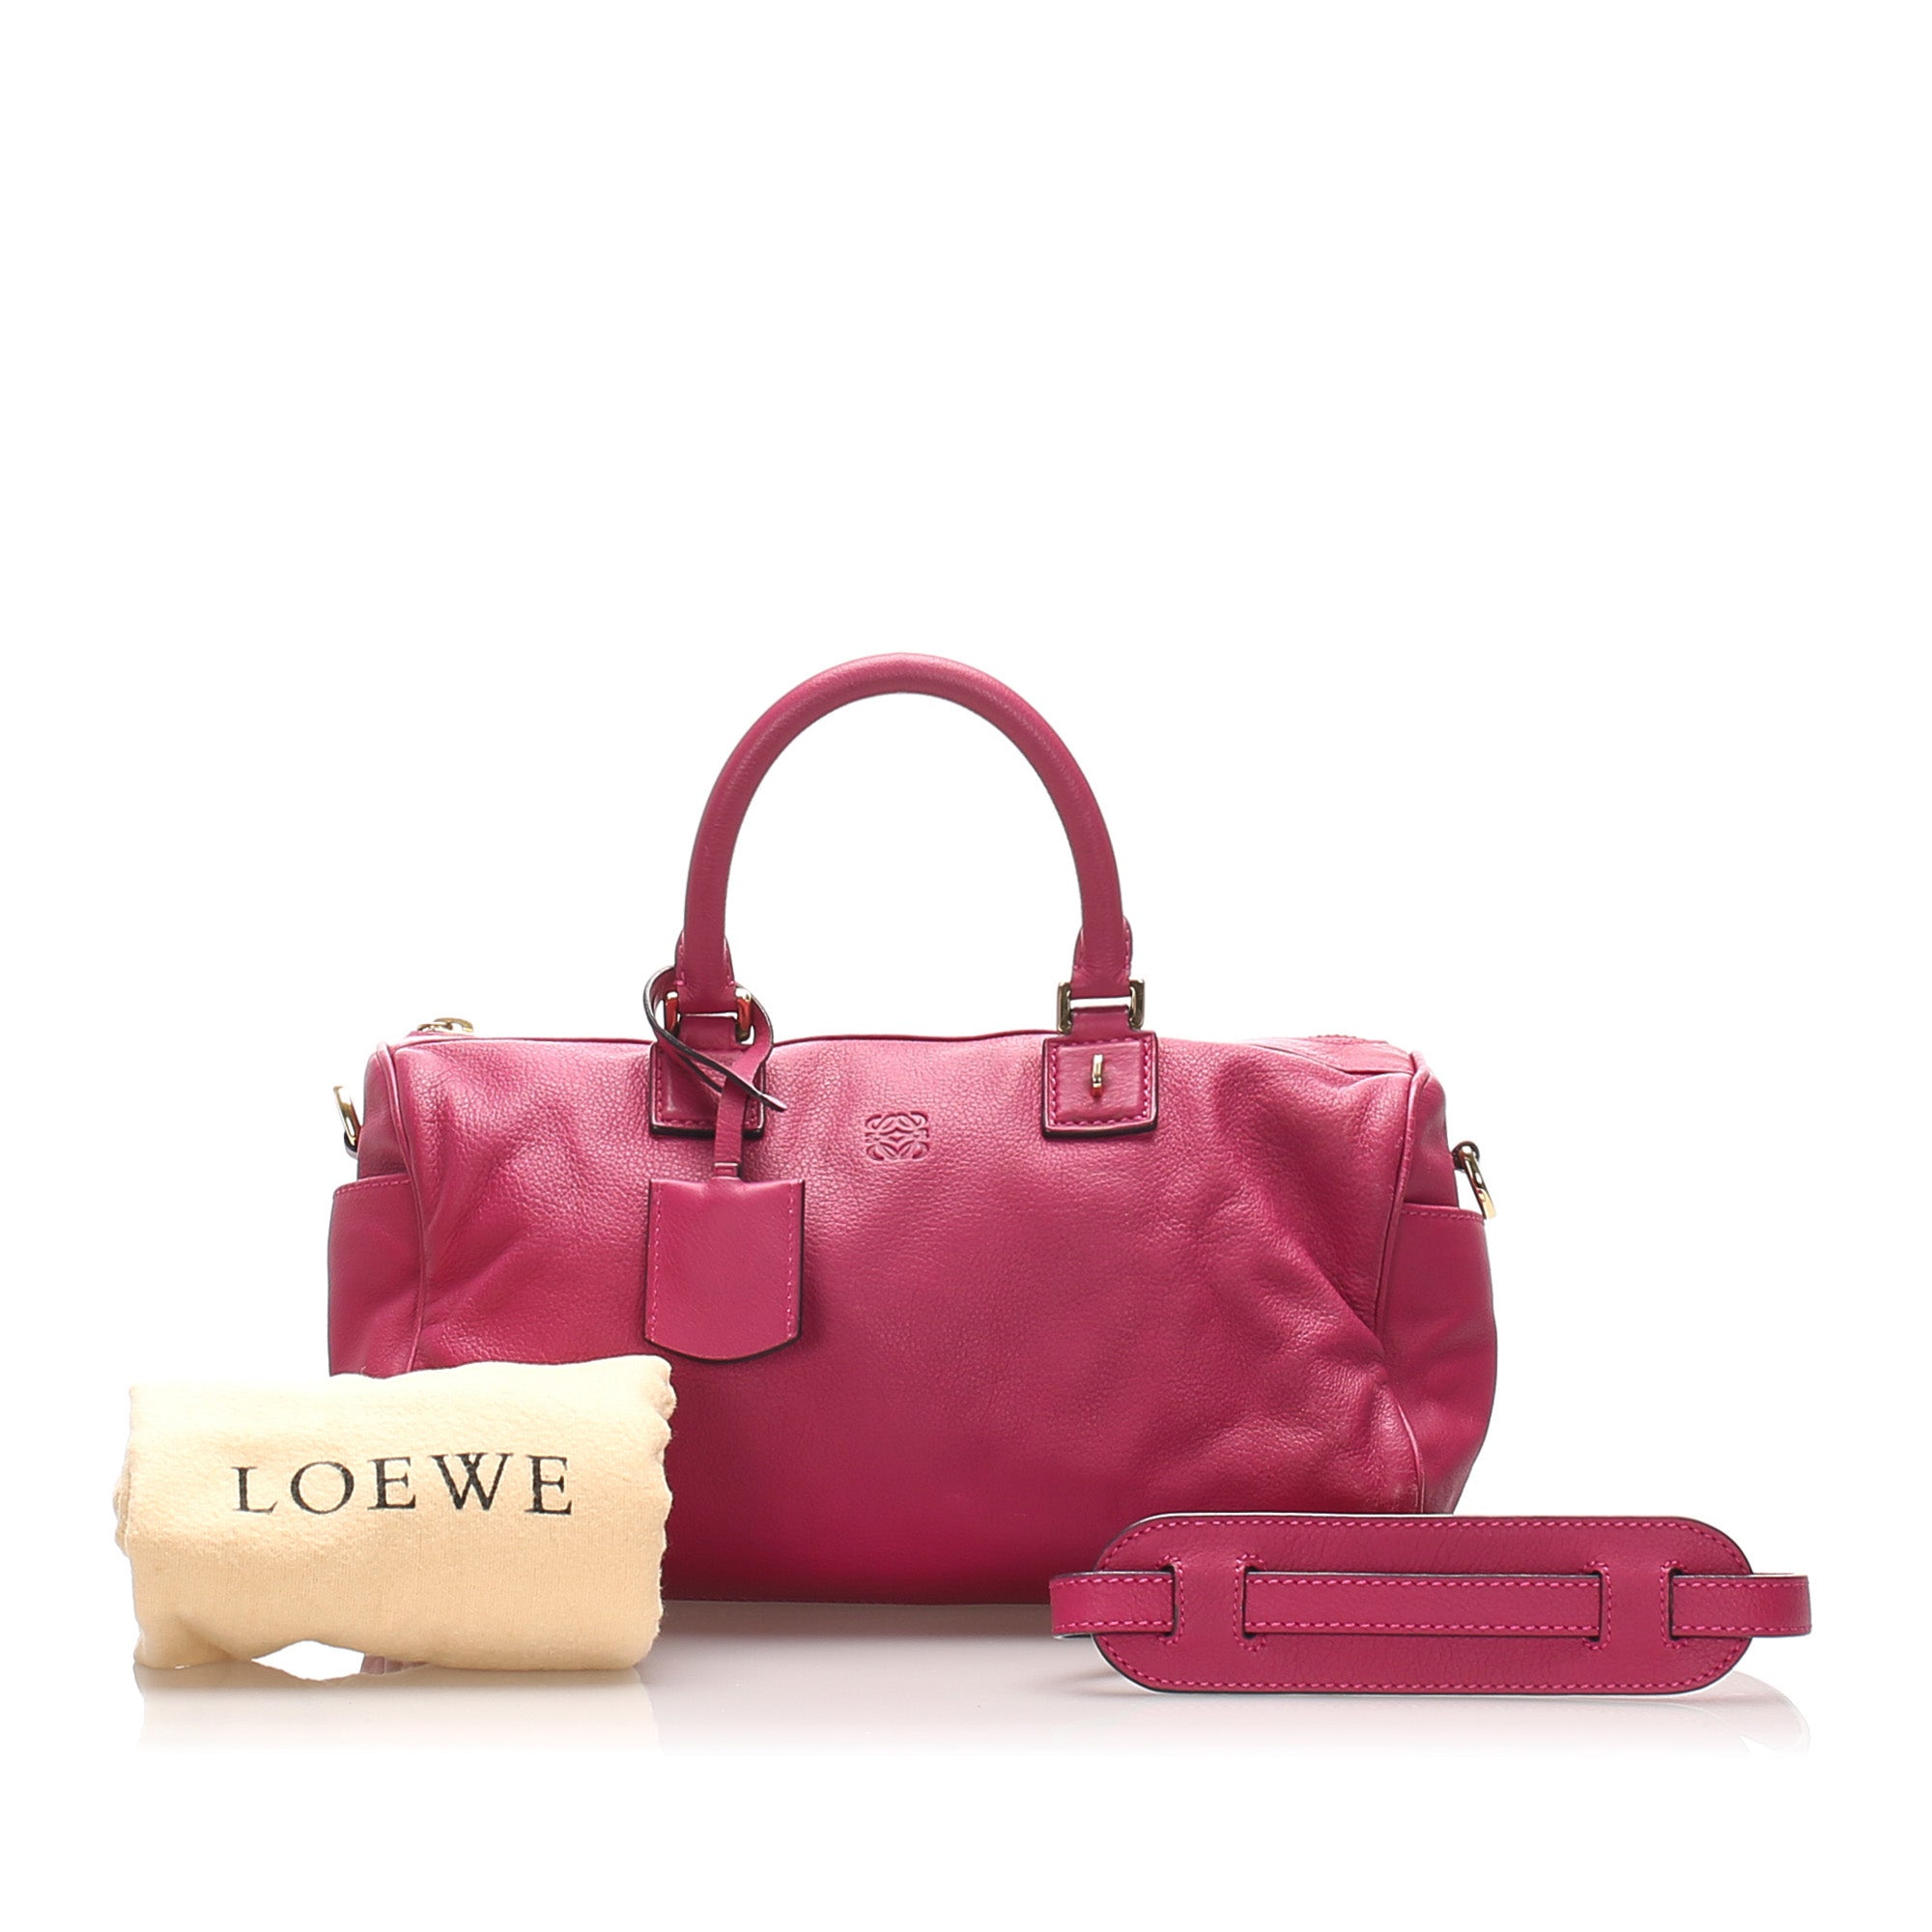 Loewe Pink Amazona Leather Satchel